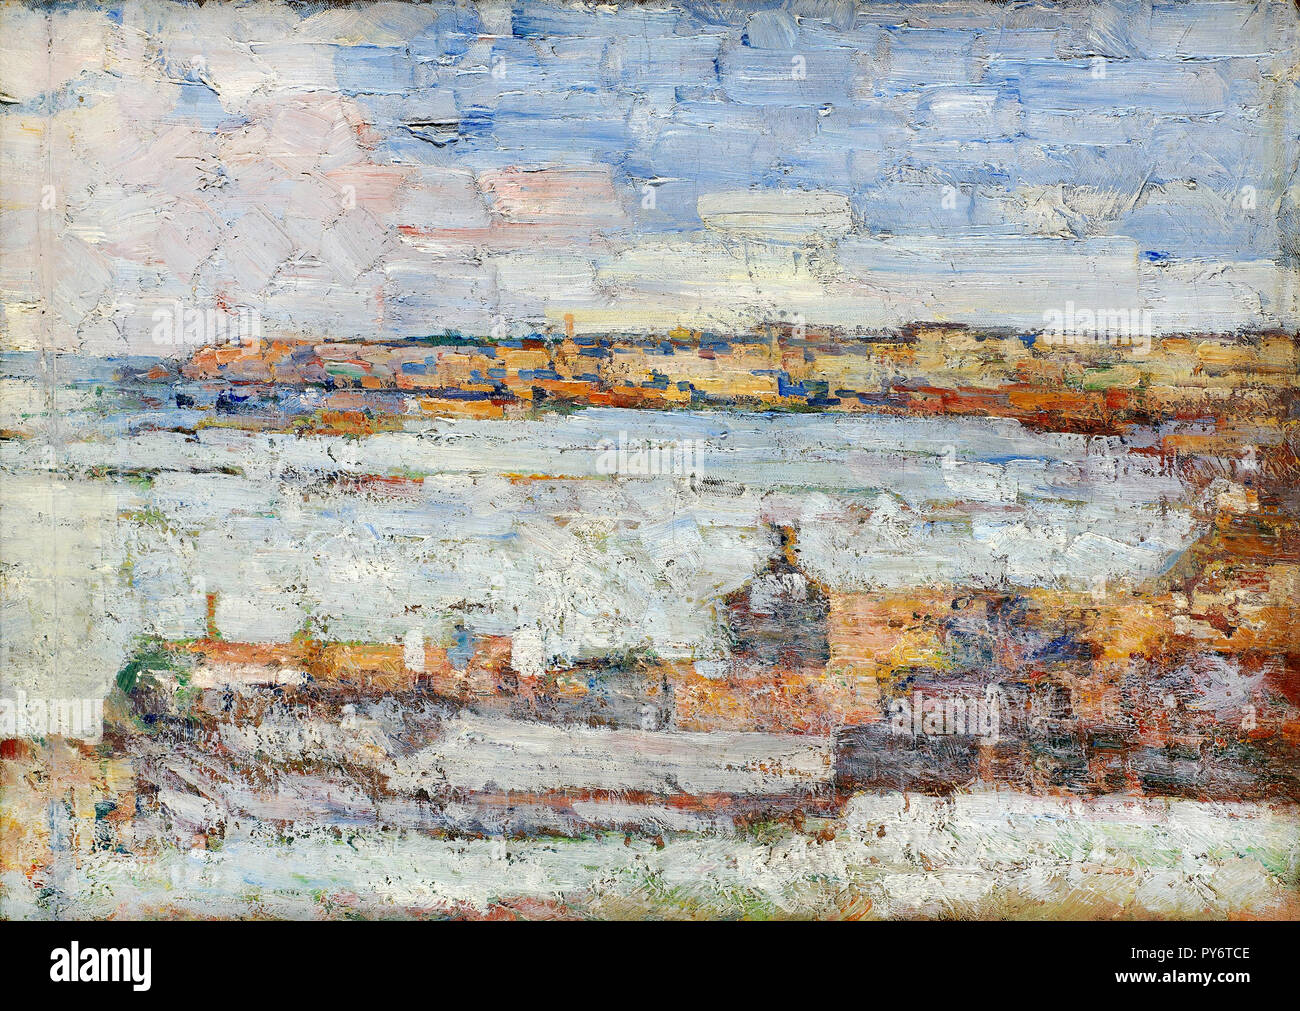 Kosta Milicevic, View of Belgrade 1920 Oil on canvas, Pavle Beljanski Memorial Collection, Novi Sad, Serbia. - Stock Image